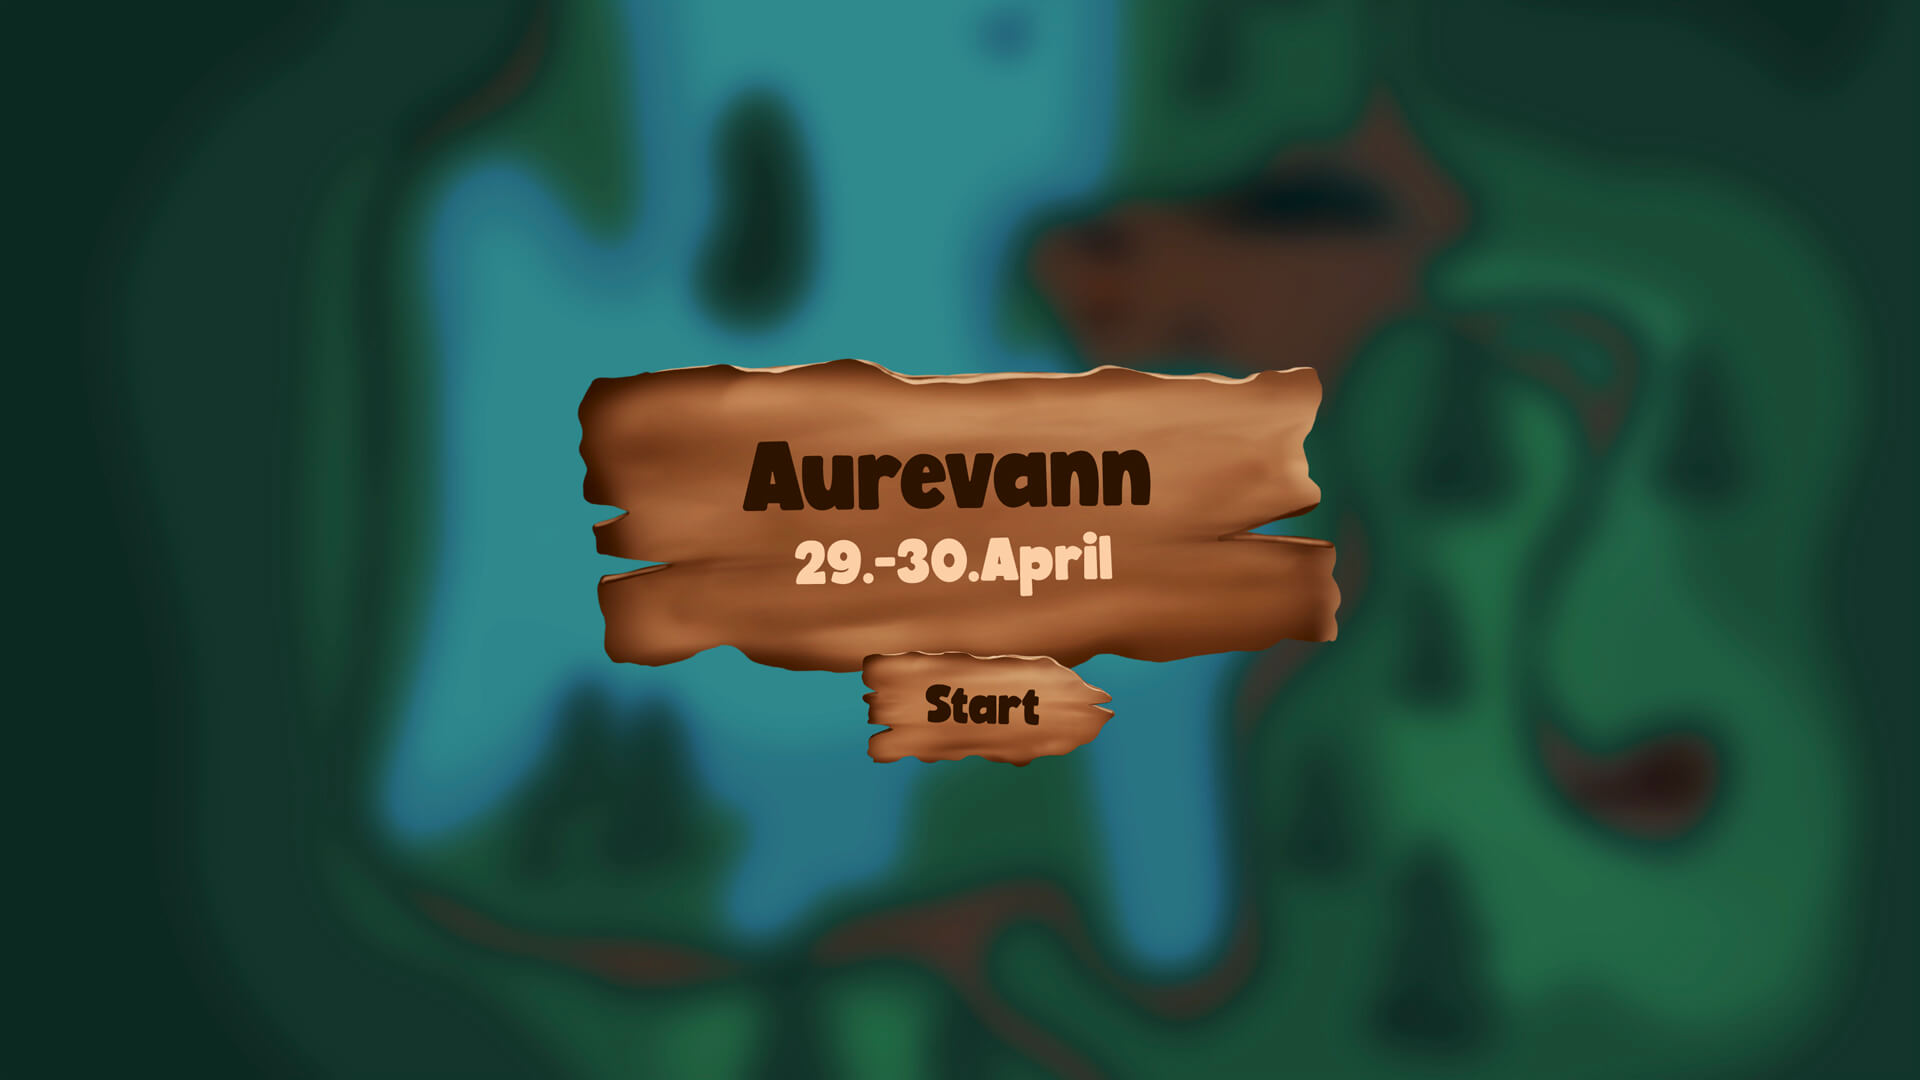 Intro screen to Aurevann with introtext, a start button and the map in the background